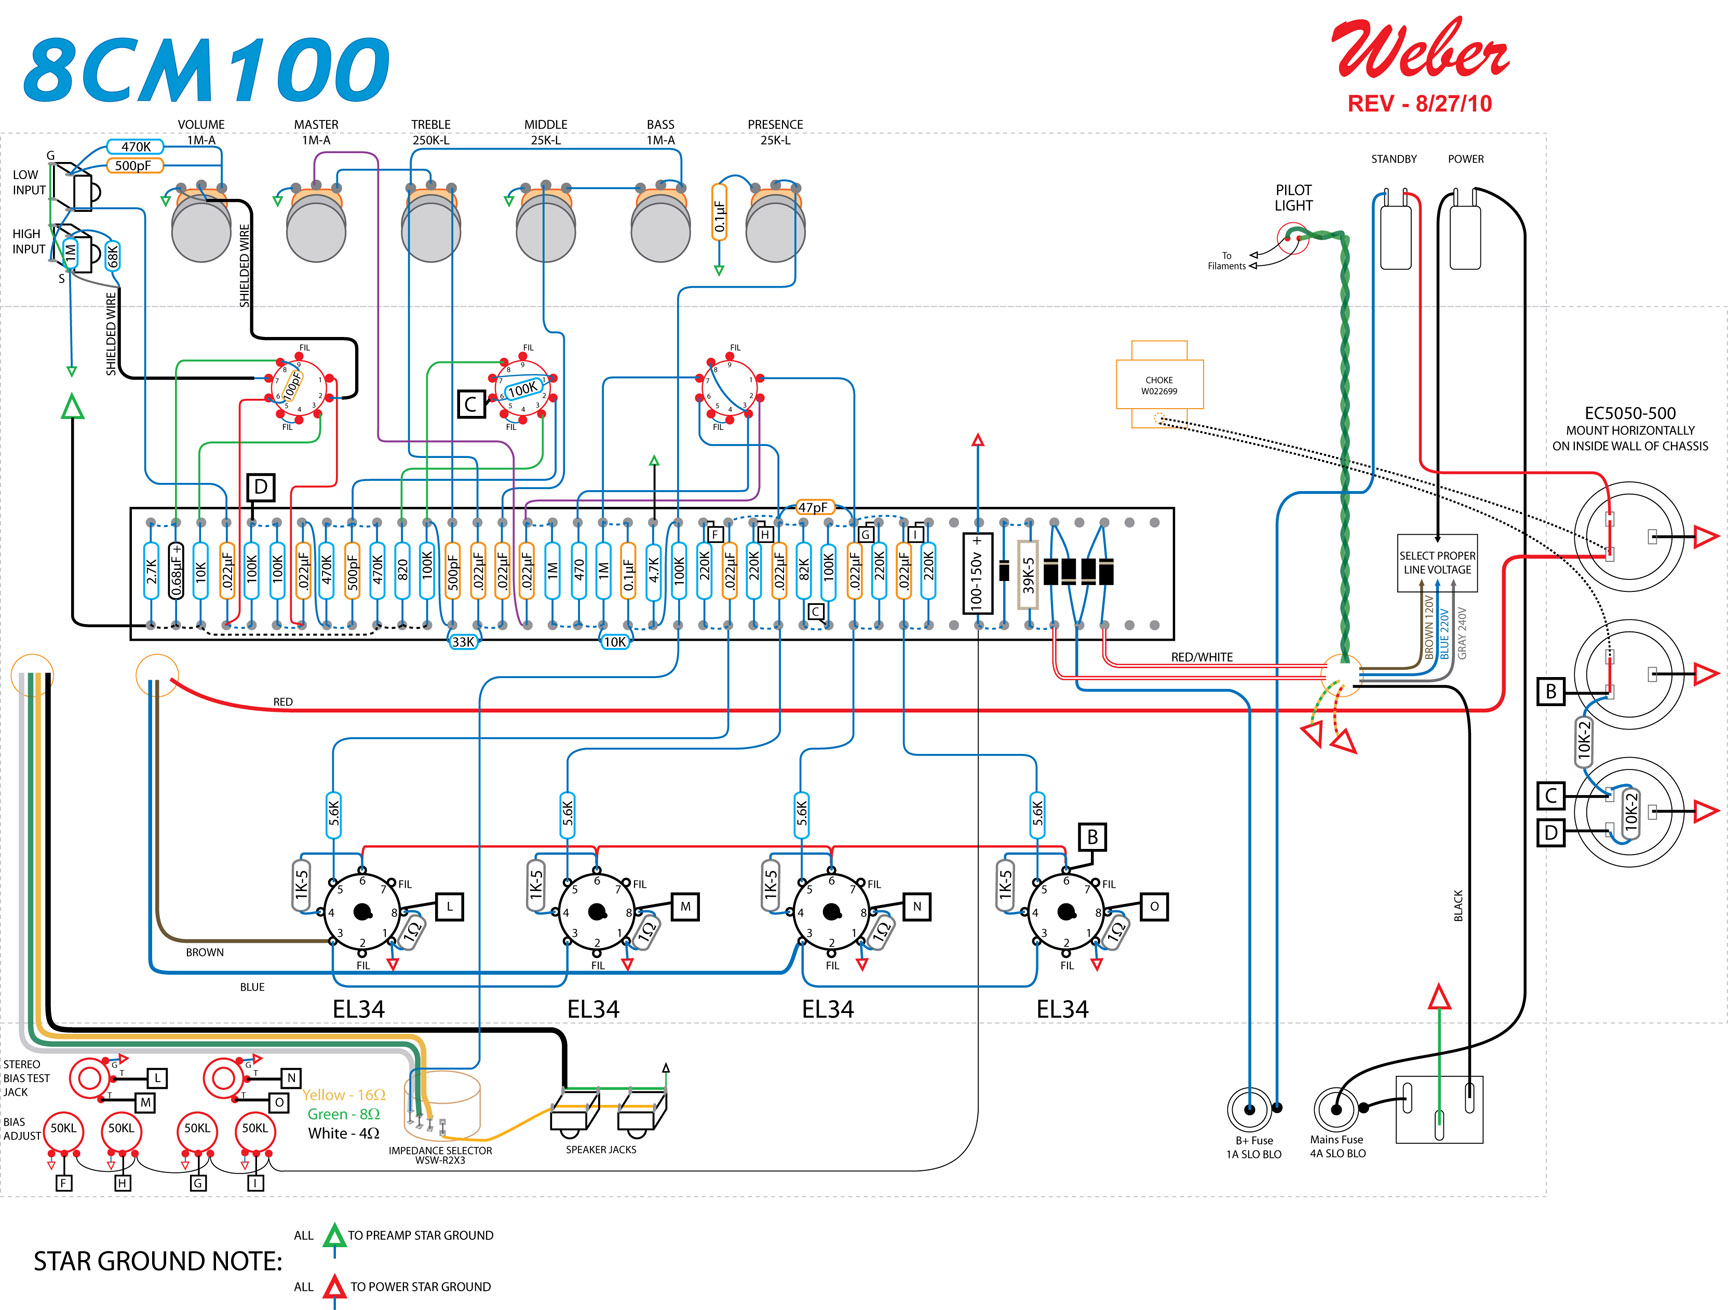 weber 8cm100_layout weber 8cm100 iration audio weber ksg 470 wiring diagrams at crackthecode.co